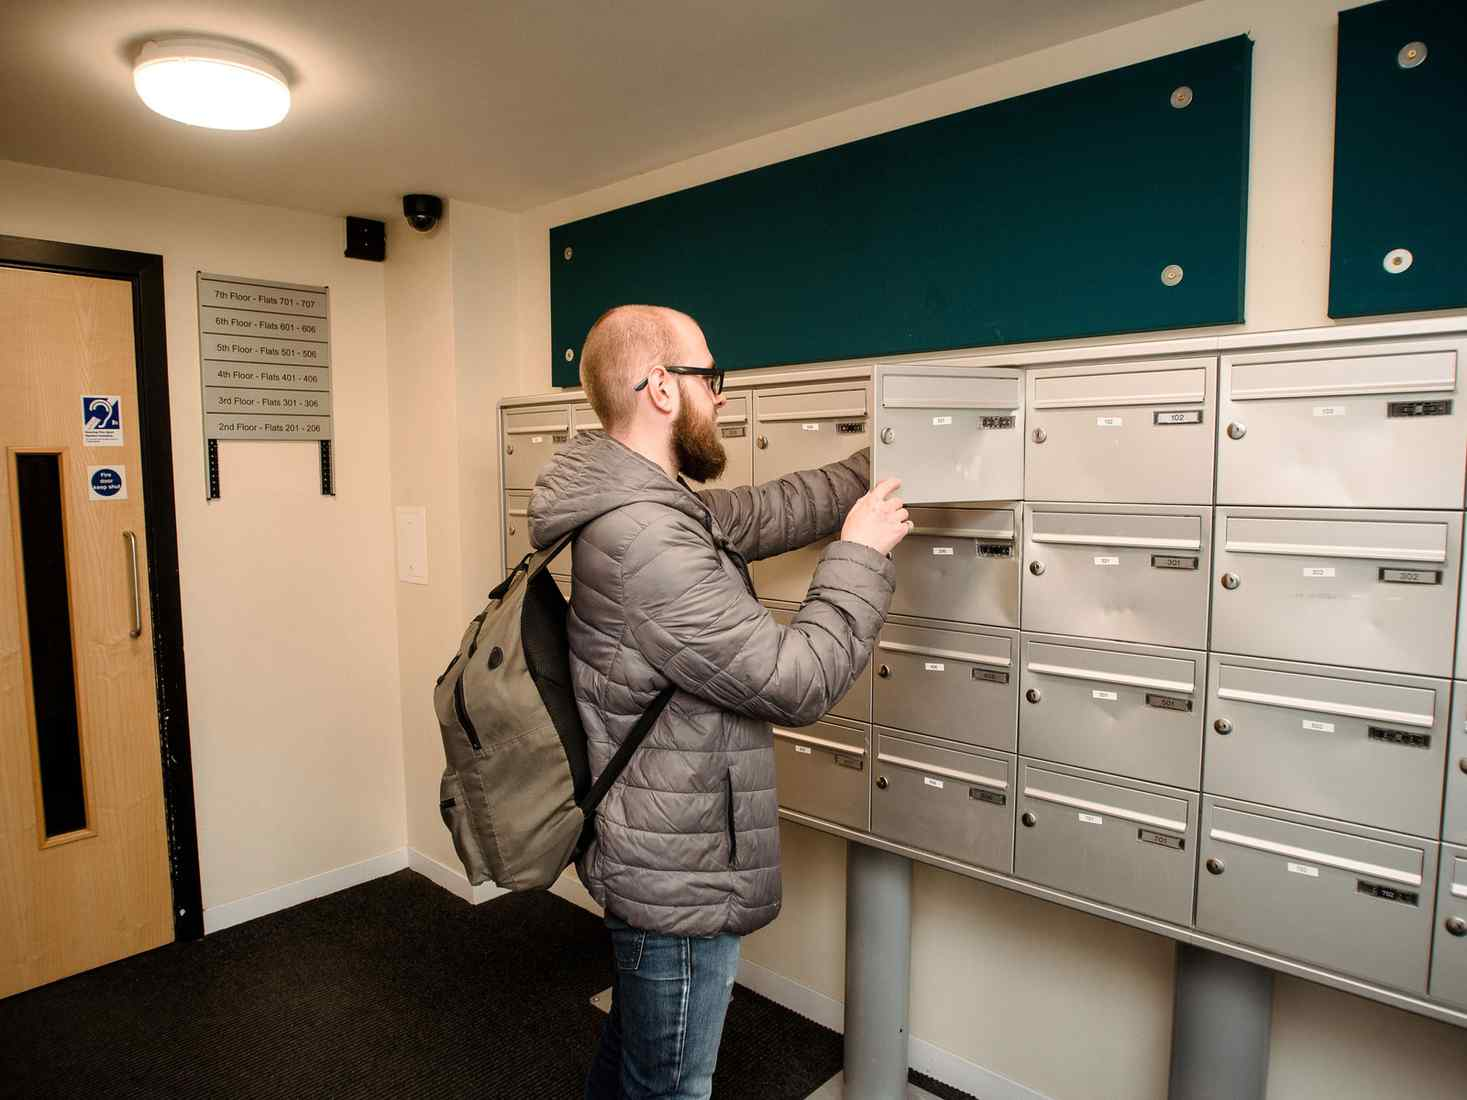 A student collects post from a postbox in the St John Central accommodation entrance area.